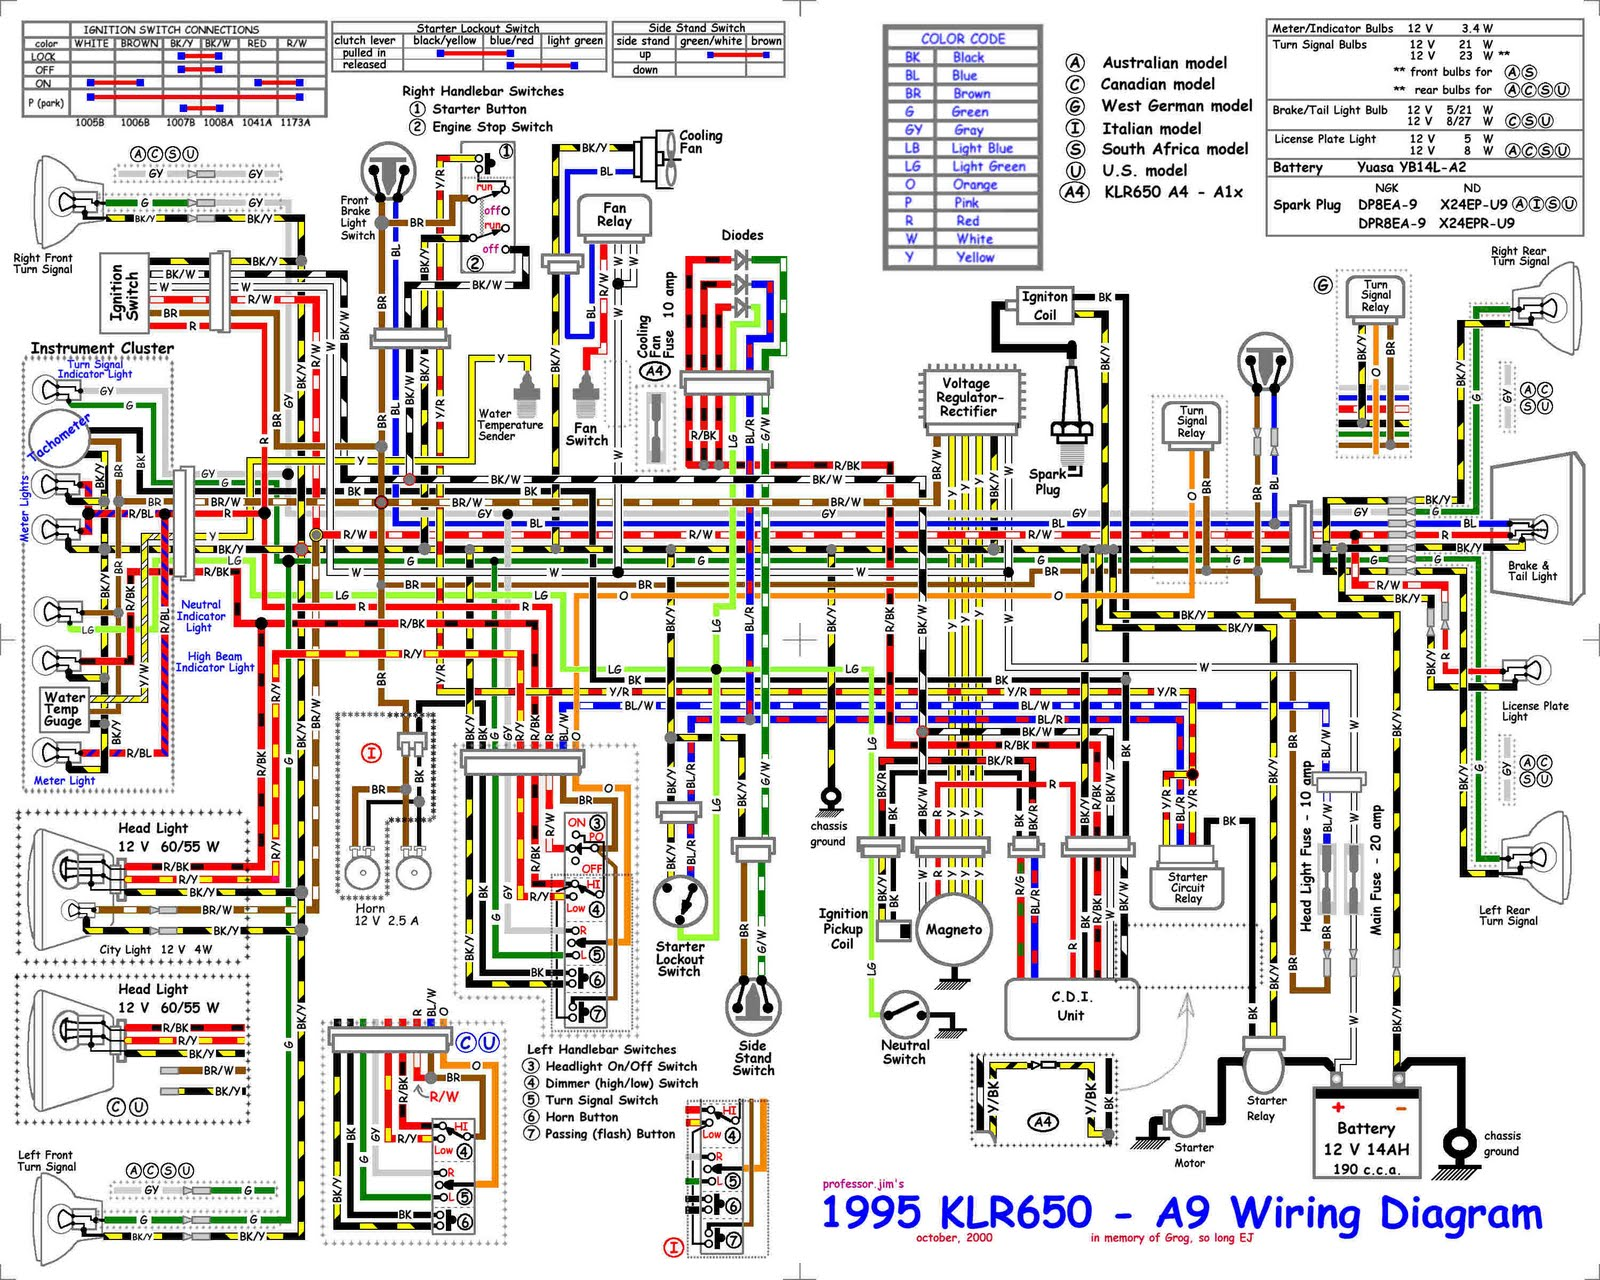 1974 monte carlo wiring diagram monte carlo wiring diagram yukon wiring diagram \u2022 free wiring Monte Carlo Fan Wiring Diagram at creativeand.co